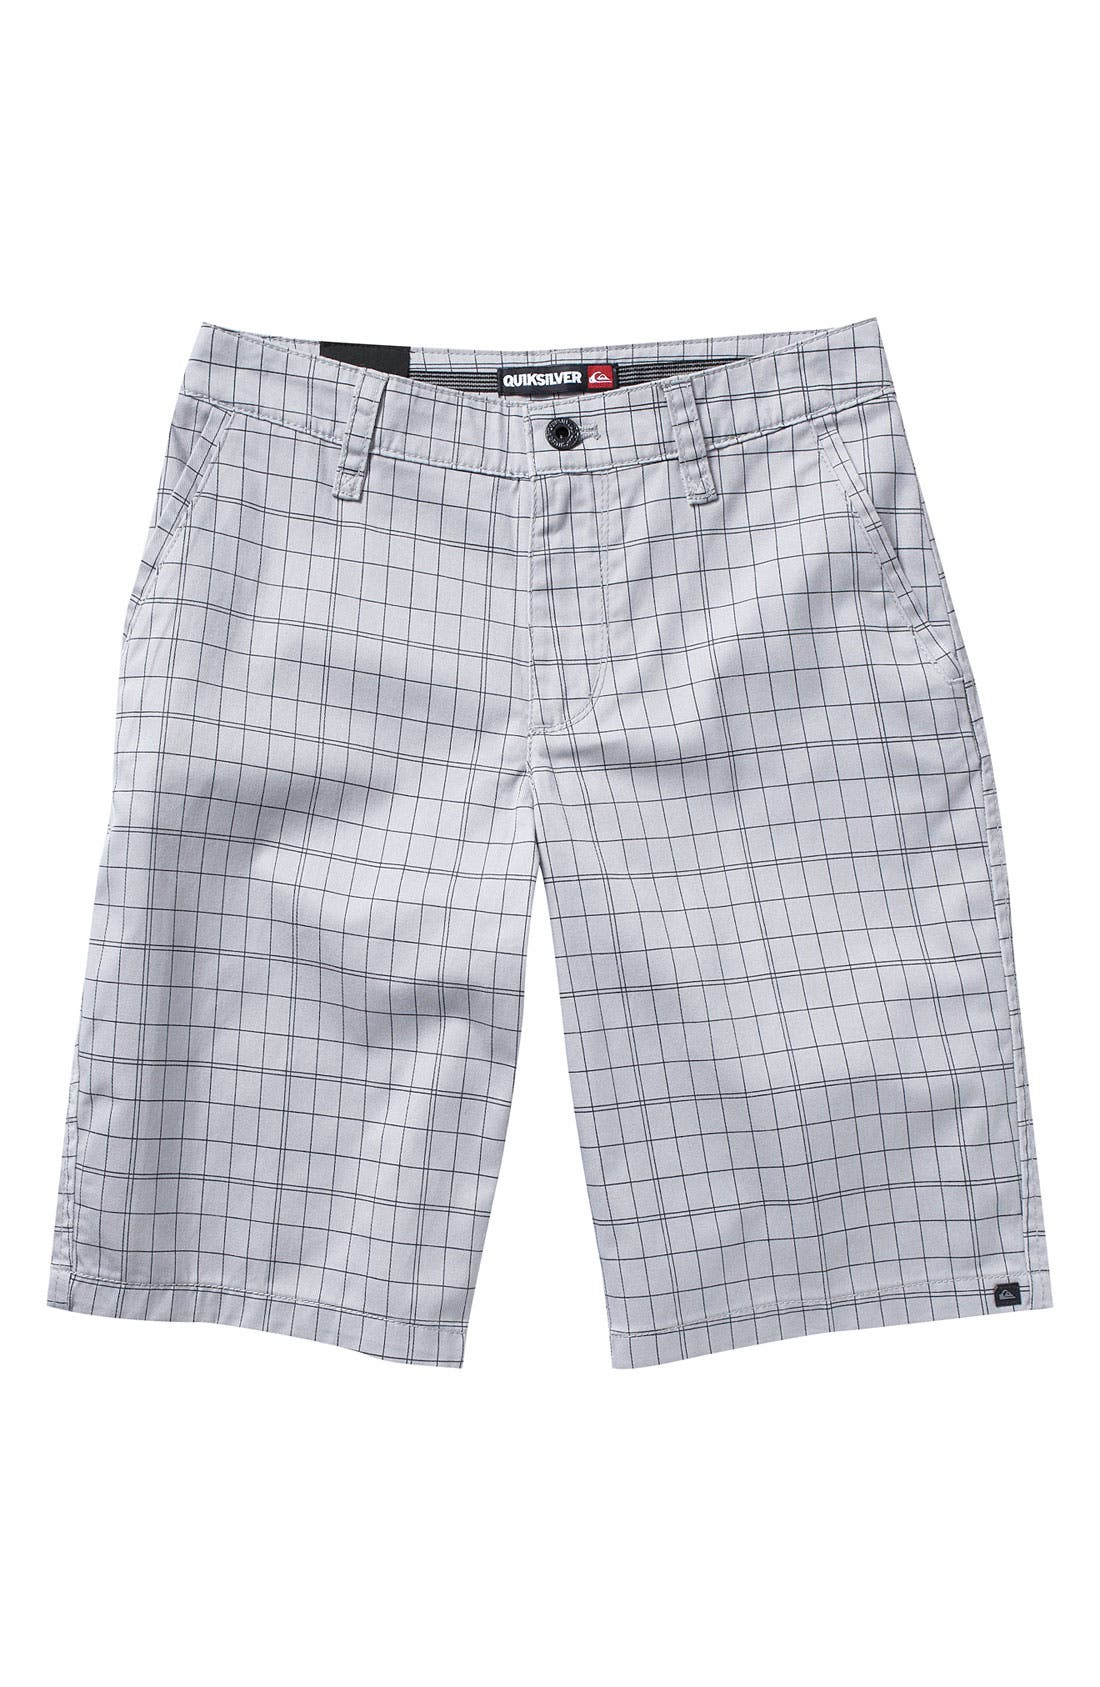 Alternate Image 1 Selected - Quiksilver 'Nuno' Shorts (Little Boys)